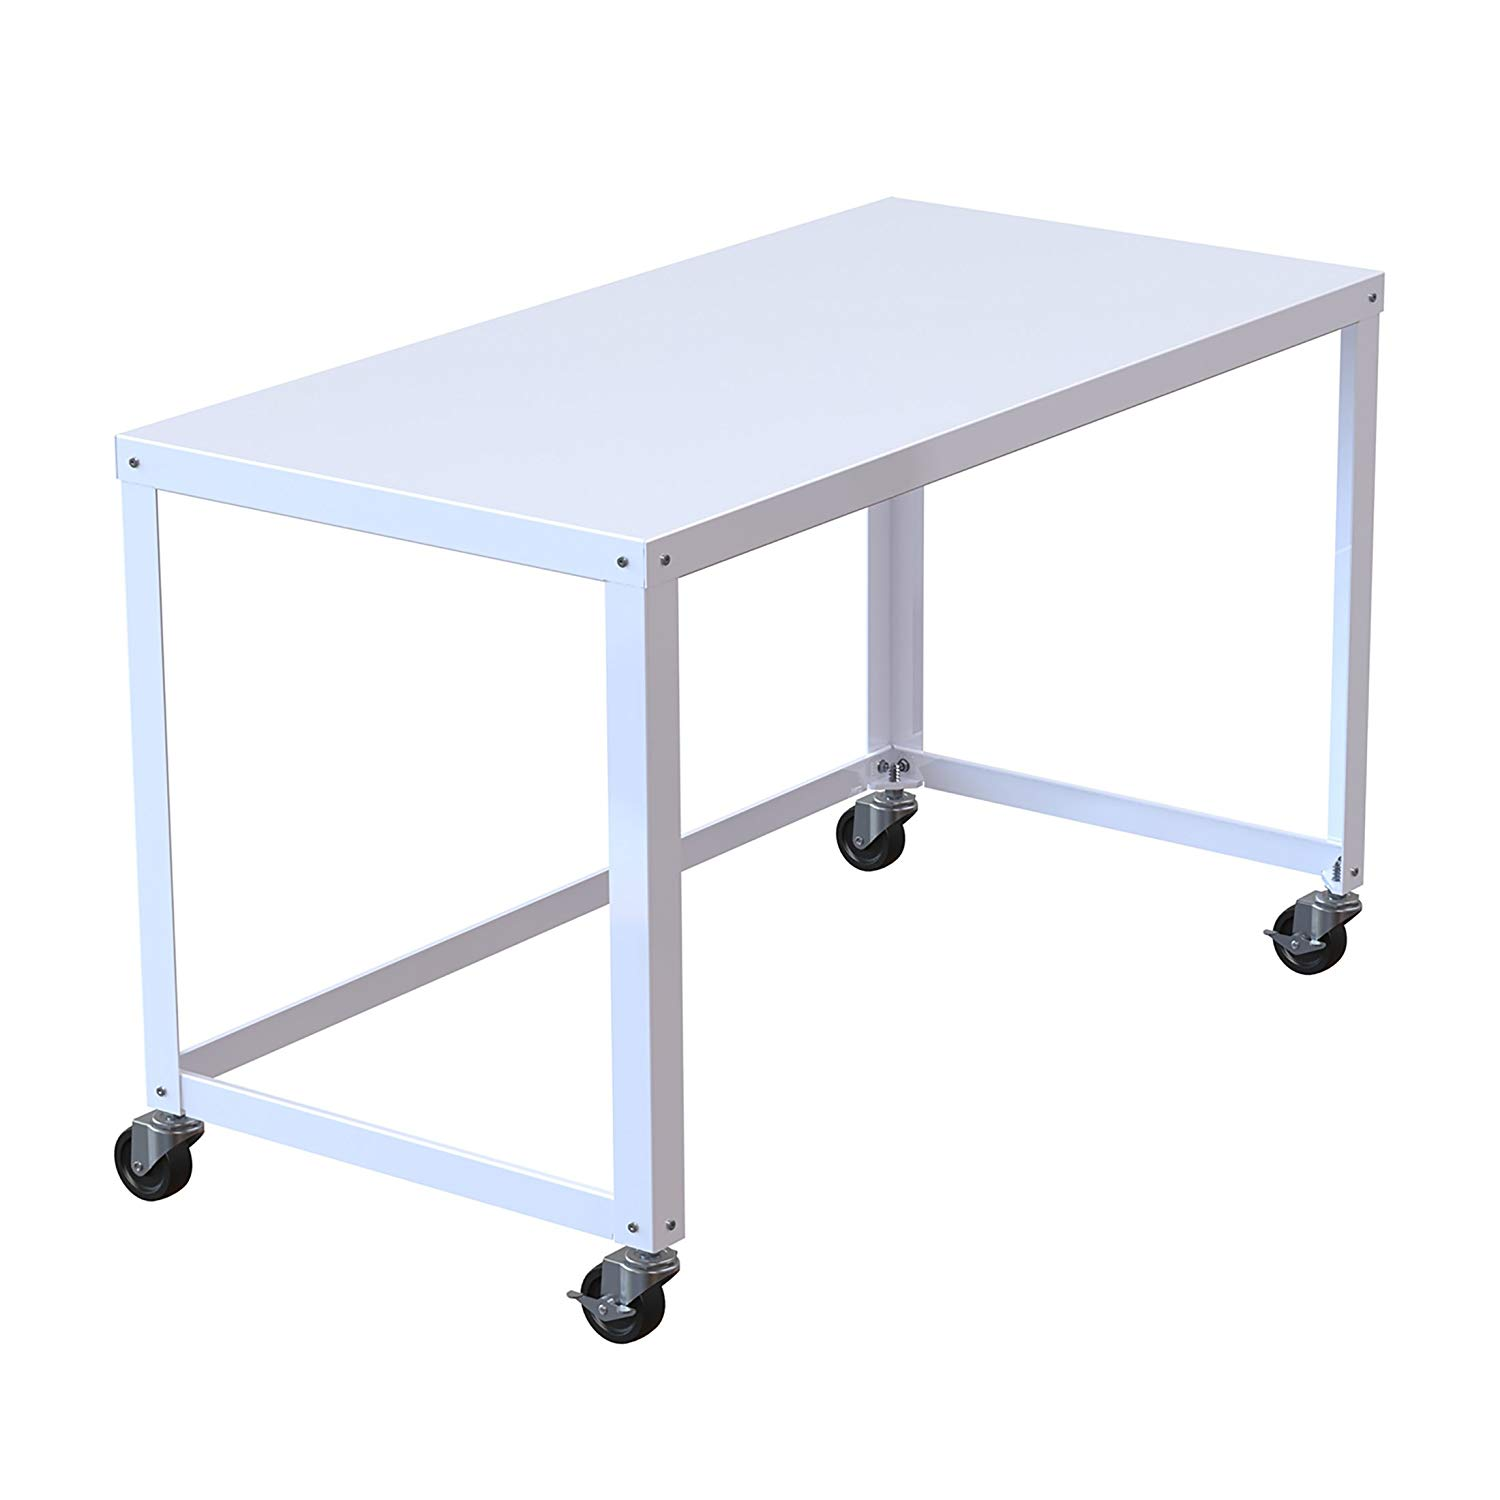 MyEasyShopping Industrial Modern White 48-inch Mobile Desk Rolling Cart Adjustable Table Computer Portable